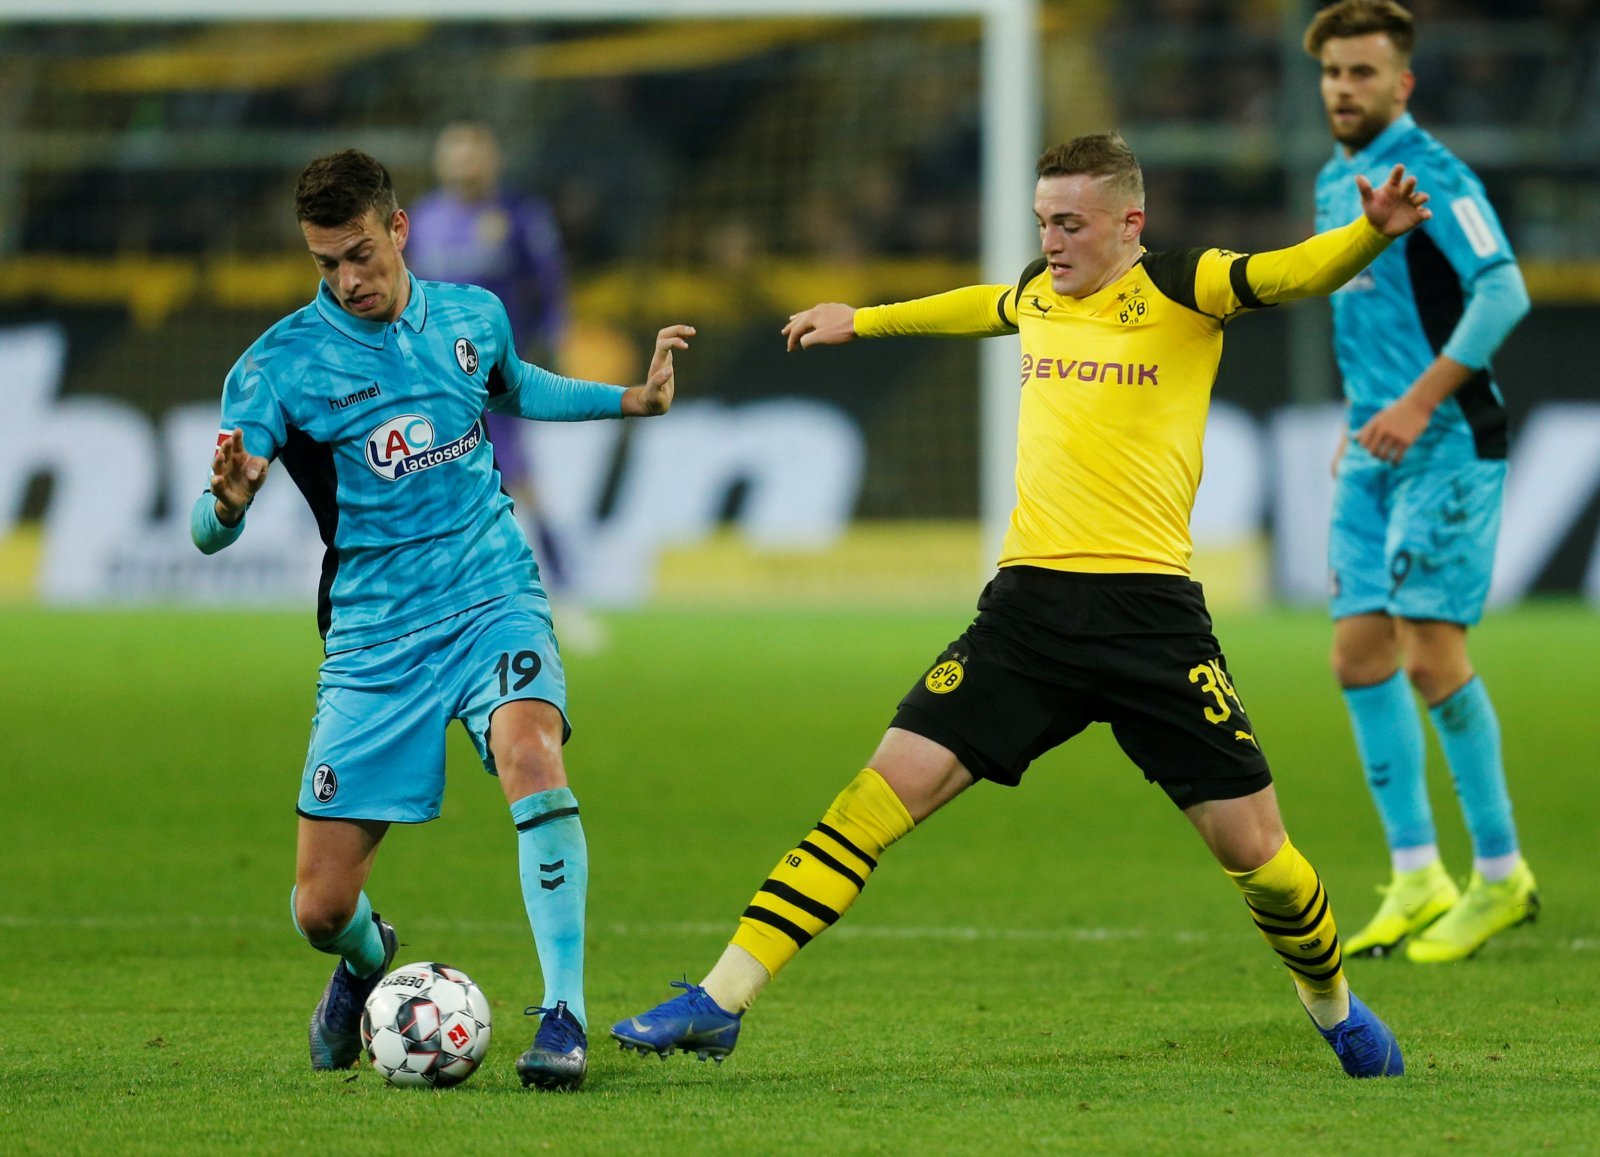 Dortmund's Jacob Bruun Larsen could be a star for Everton